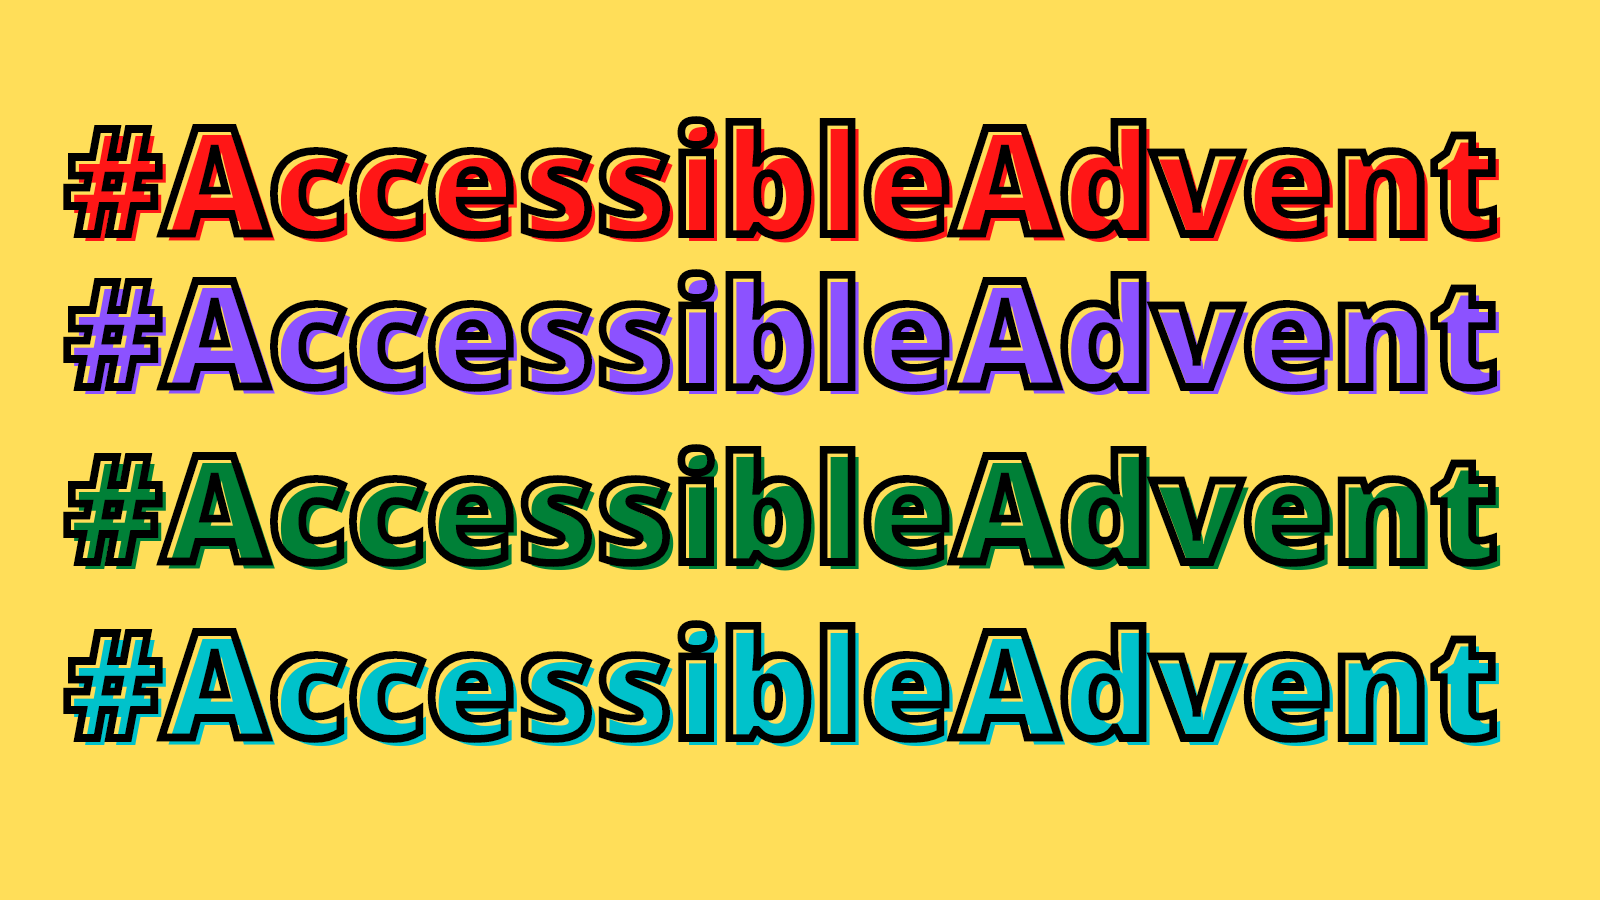 Against a yellow background, the hashtag Accessible Advent in large bold letters is repeated 4 timess, in red, purple, green and turquoise.